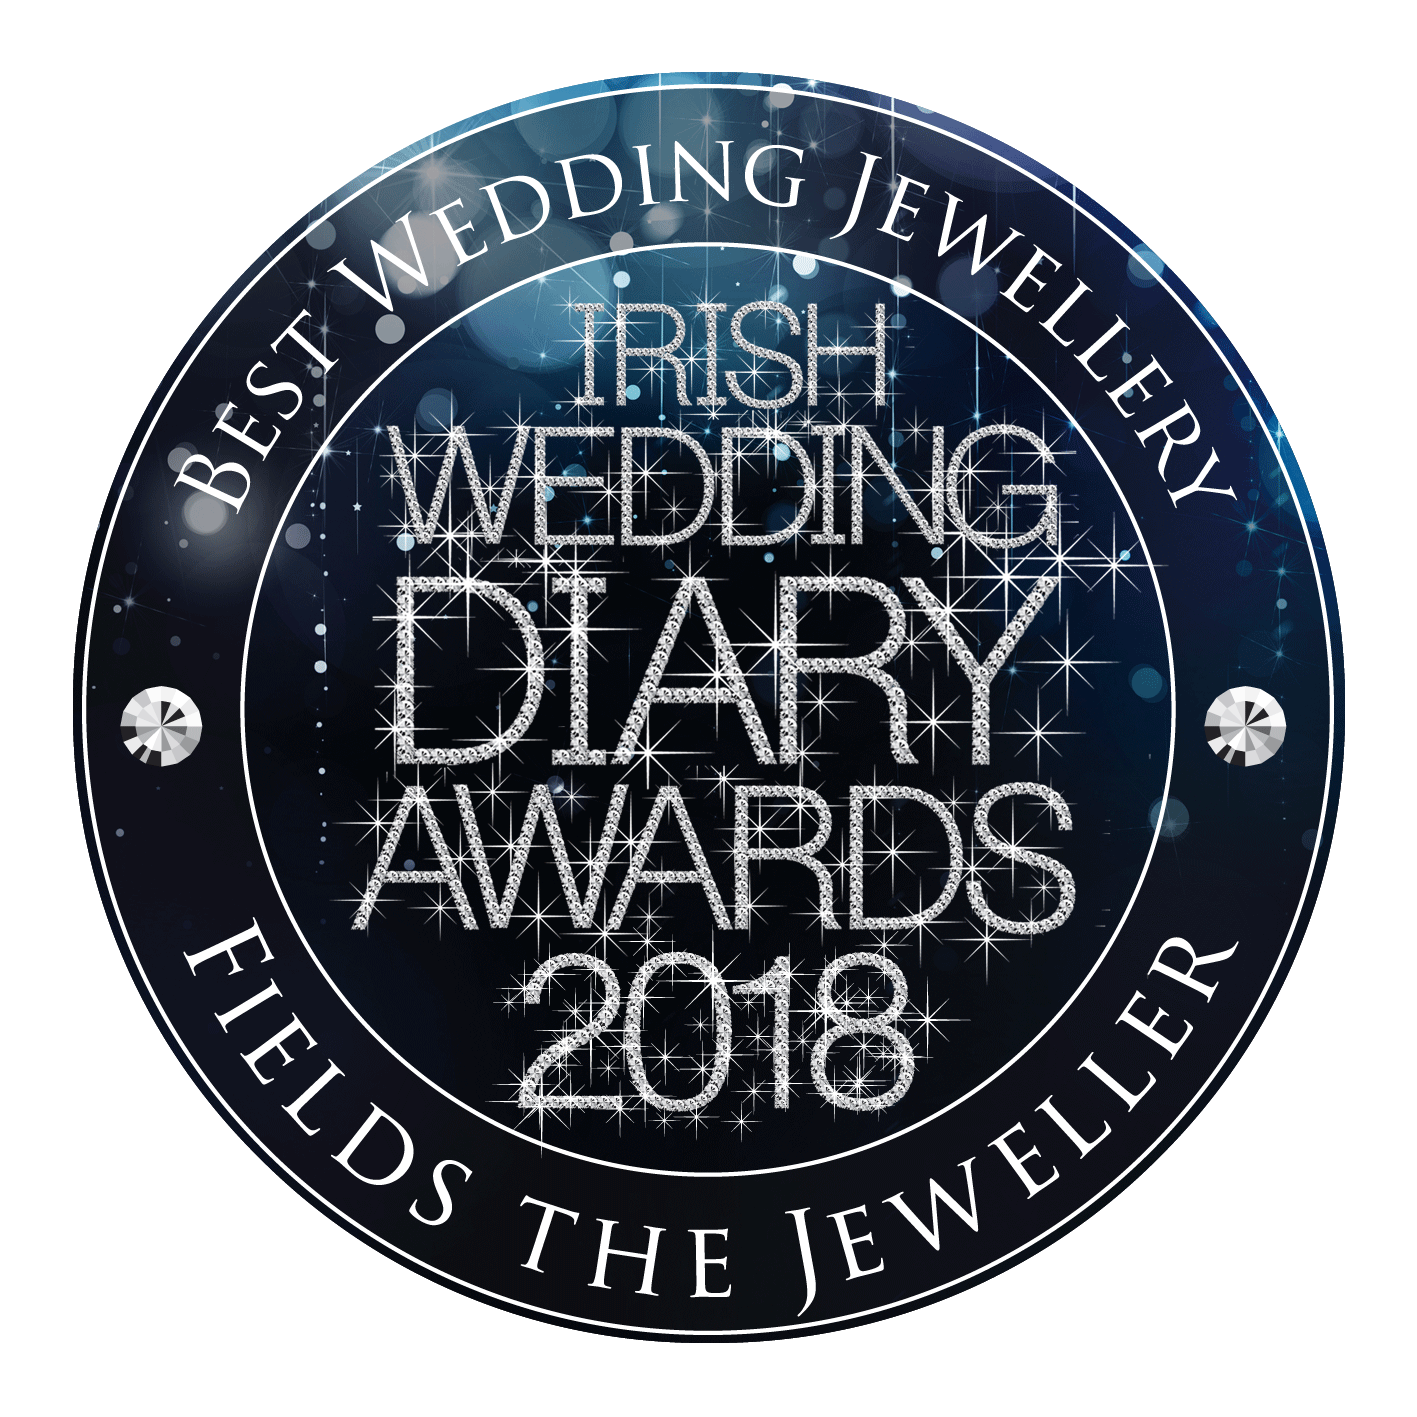 Fields the Jeweller - Best Wedding Jewellery - Irish Wedding Diary Awards 2018